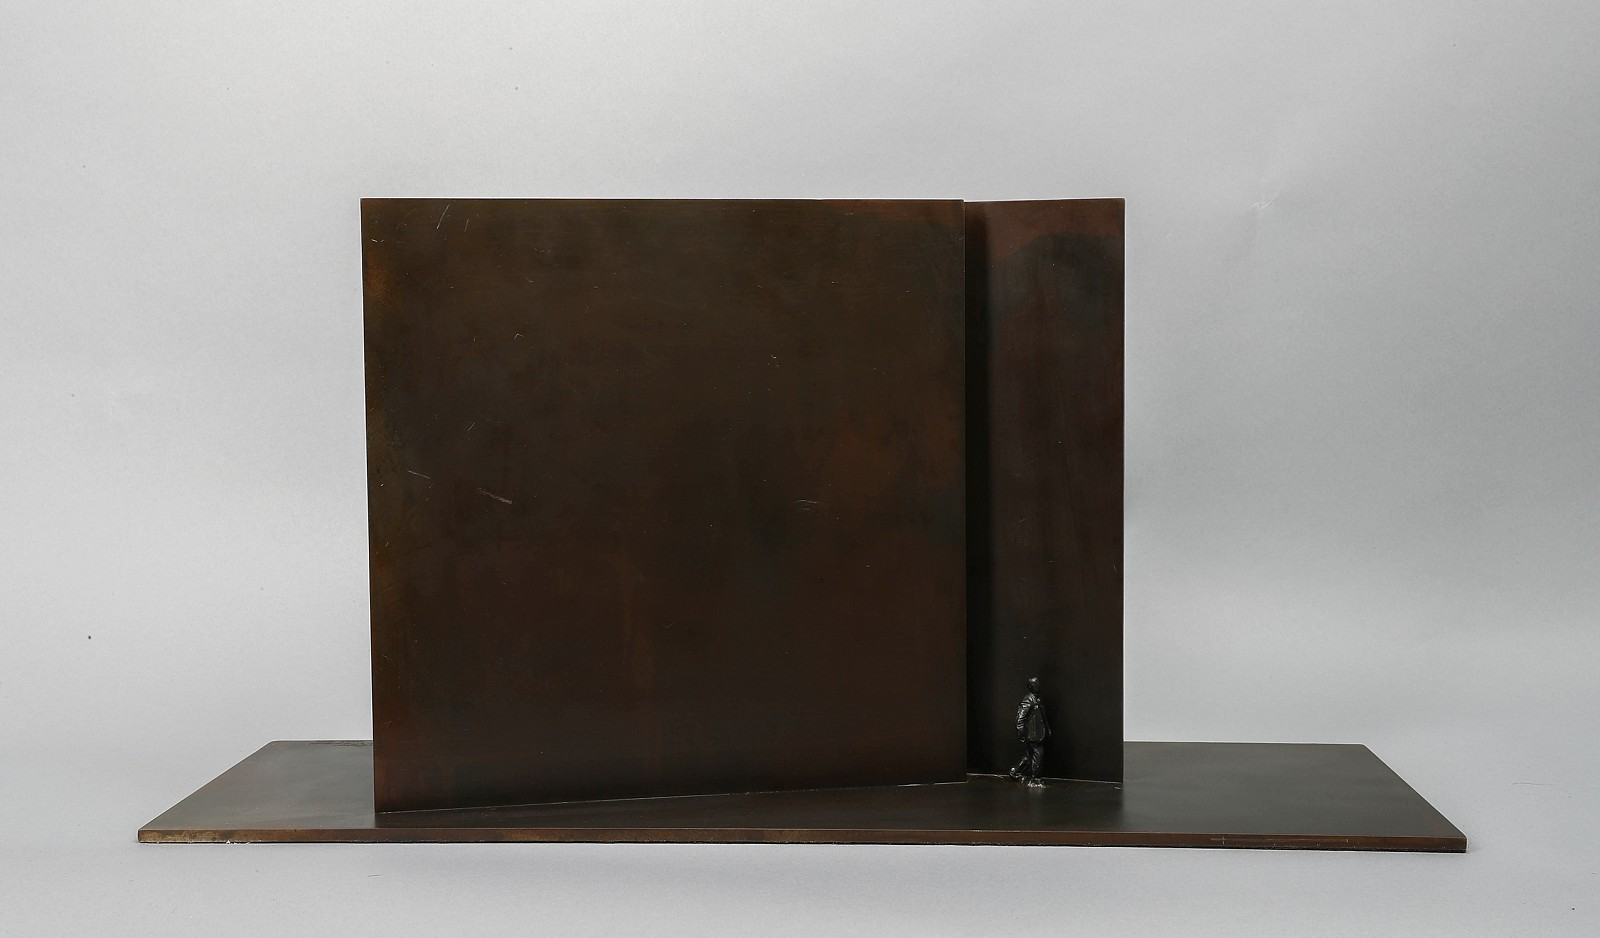 Jim Rennert ,   Breakthrough, Edition of 7  ,  2007     bronze and steel ,  12 x 25 x 8 in. (30.5 x 63.5 x 20.3 cm)     JR031207